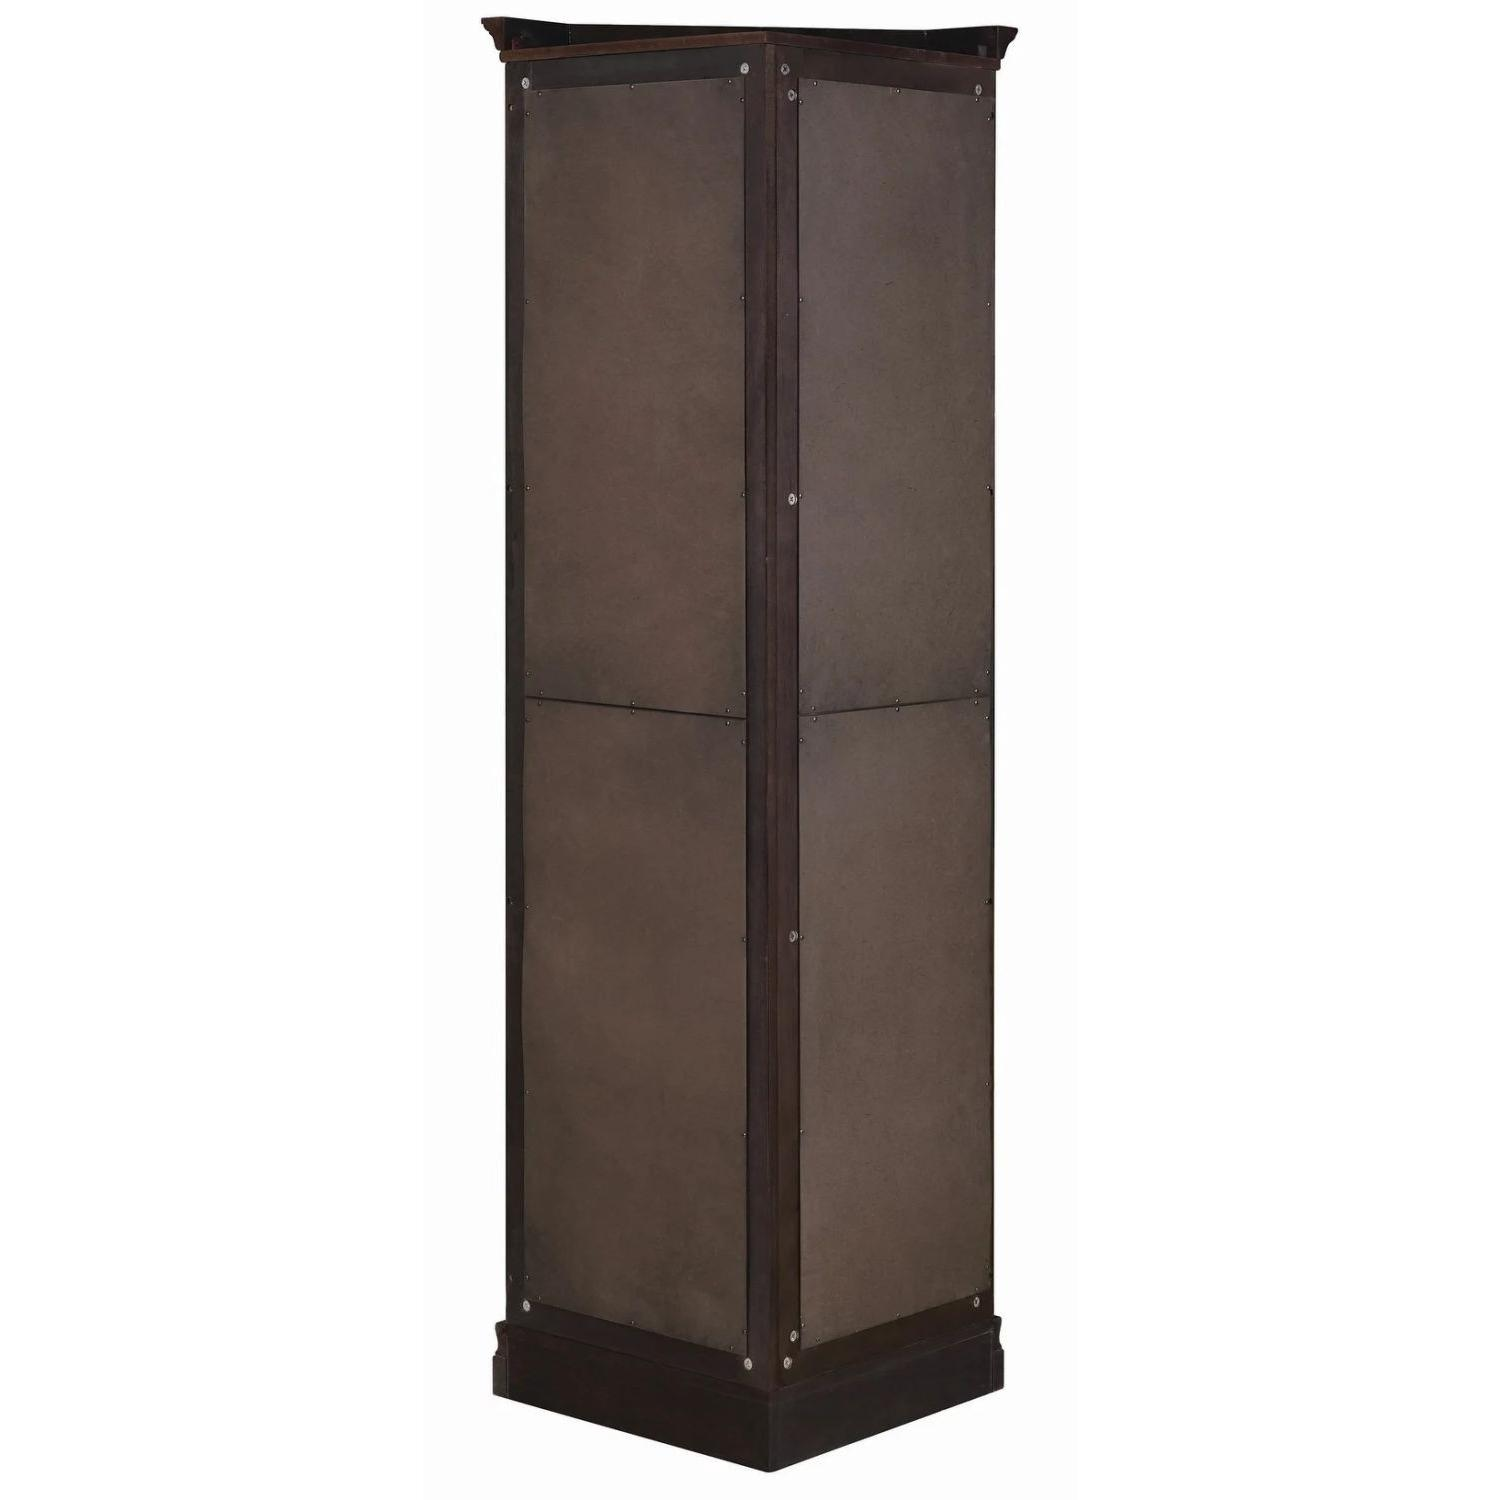 Classic Curio Cabinet in Golden Brown Finish - image-1